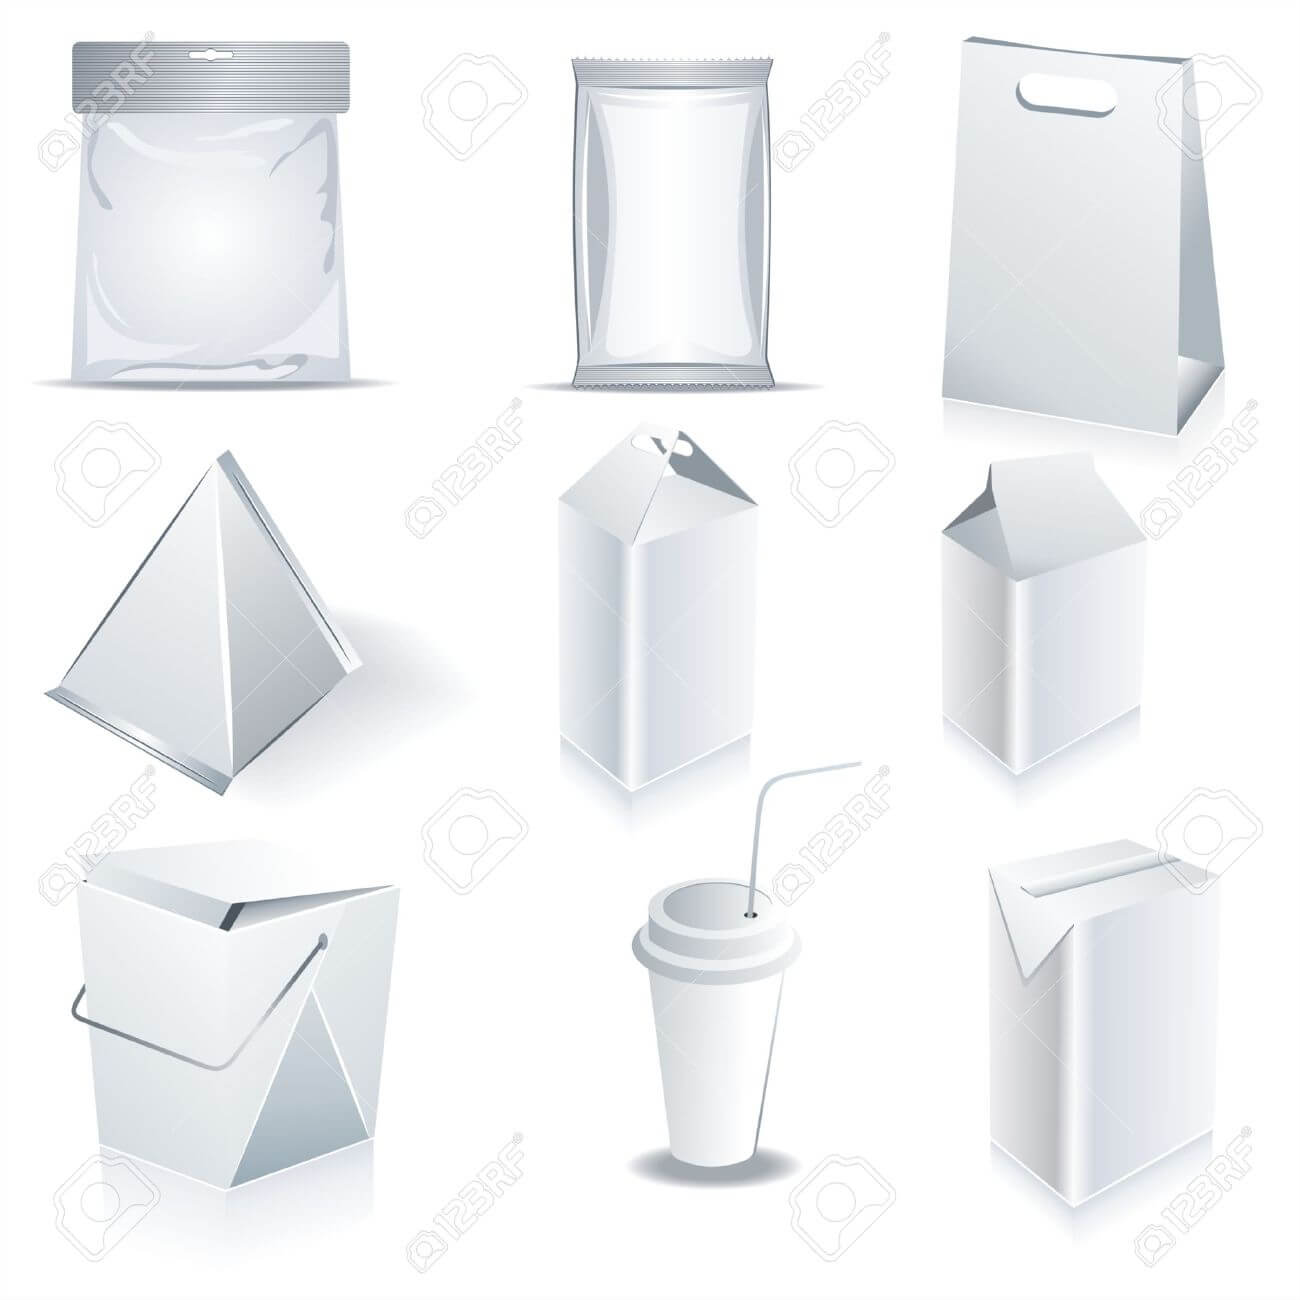 White Package Templates With Regard To Blank Packaging Templates